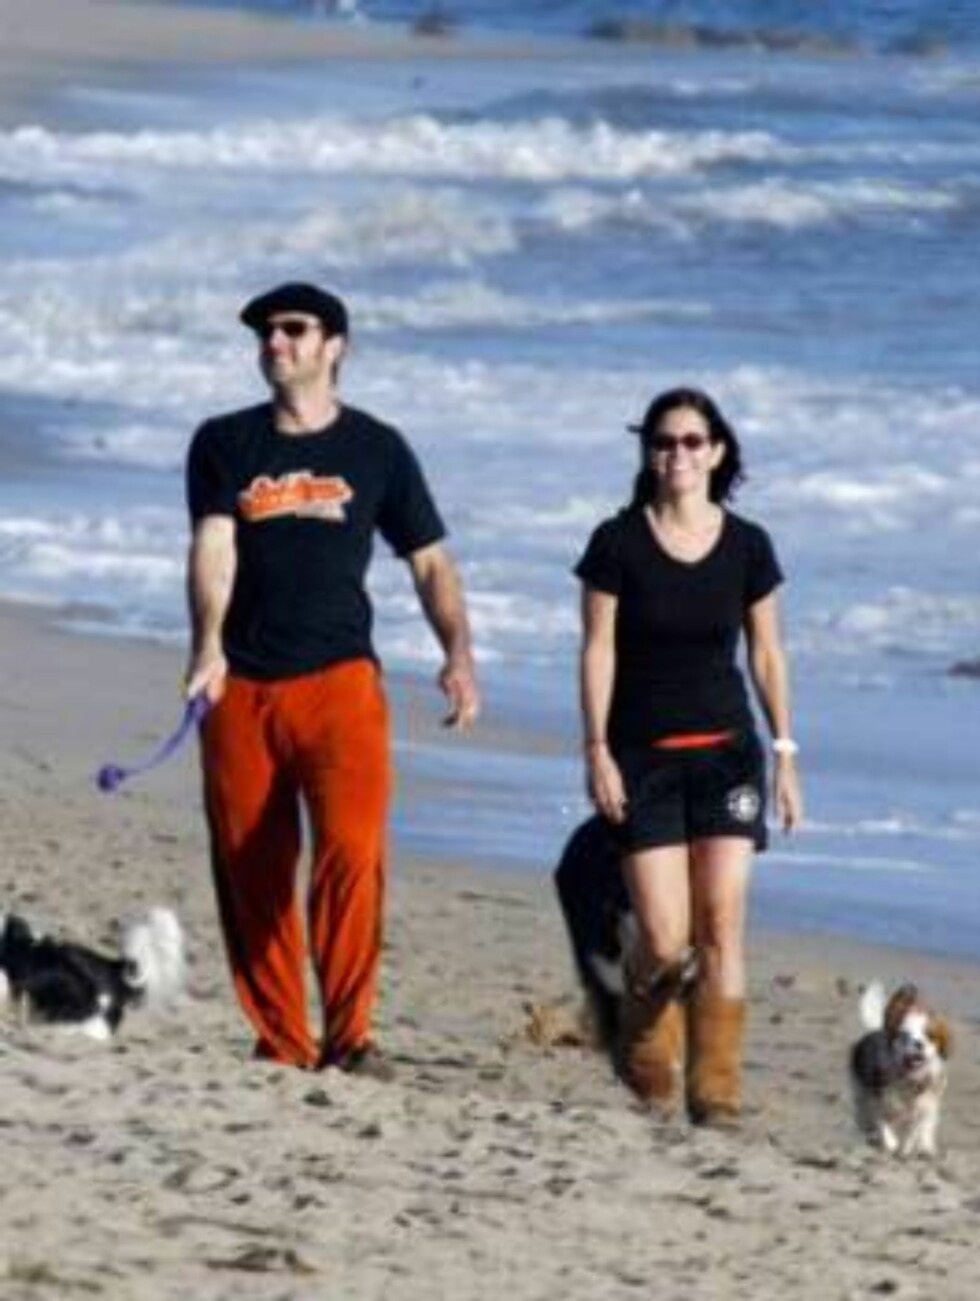 """A pregnant Courteney Cox with husband David Arquette and their dogs, taking a walk on the beach in Malibu.  She's just barely starting to show a small belly.  Cox recently announced she's pregnant after years of trying and numerous miscarriages.  The """"Fri Foto: All Over Press"""